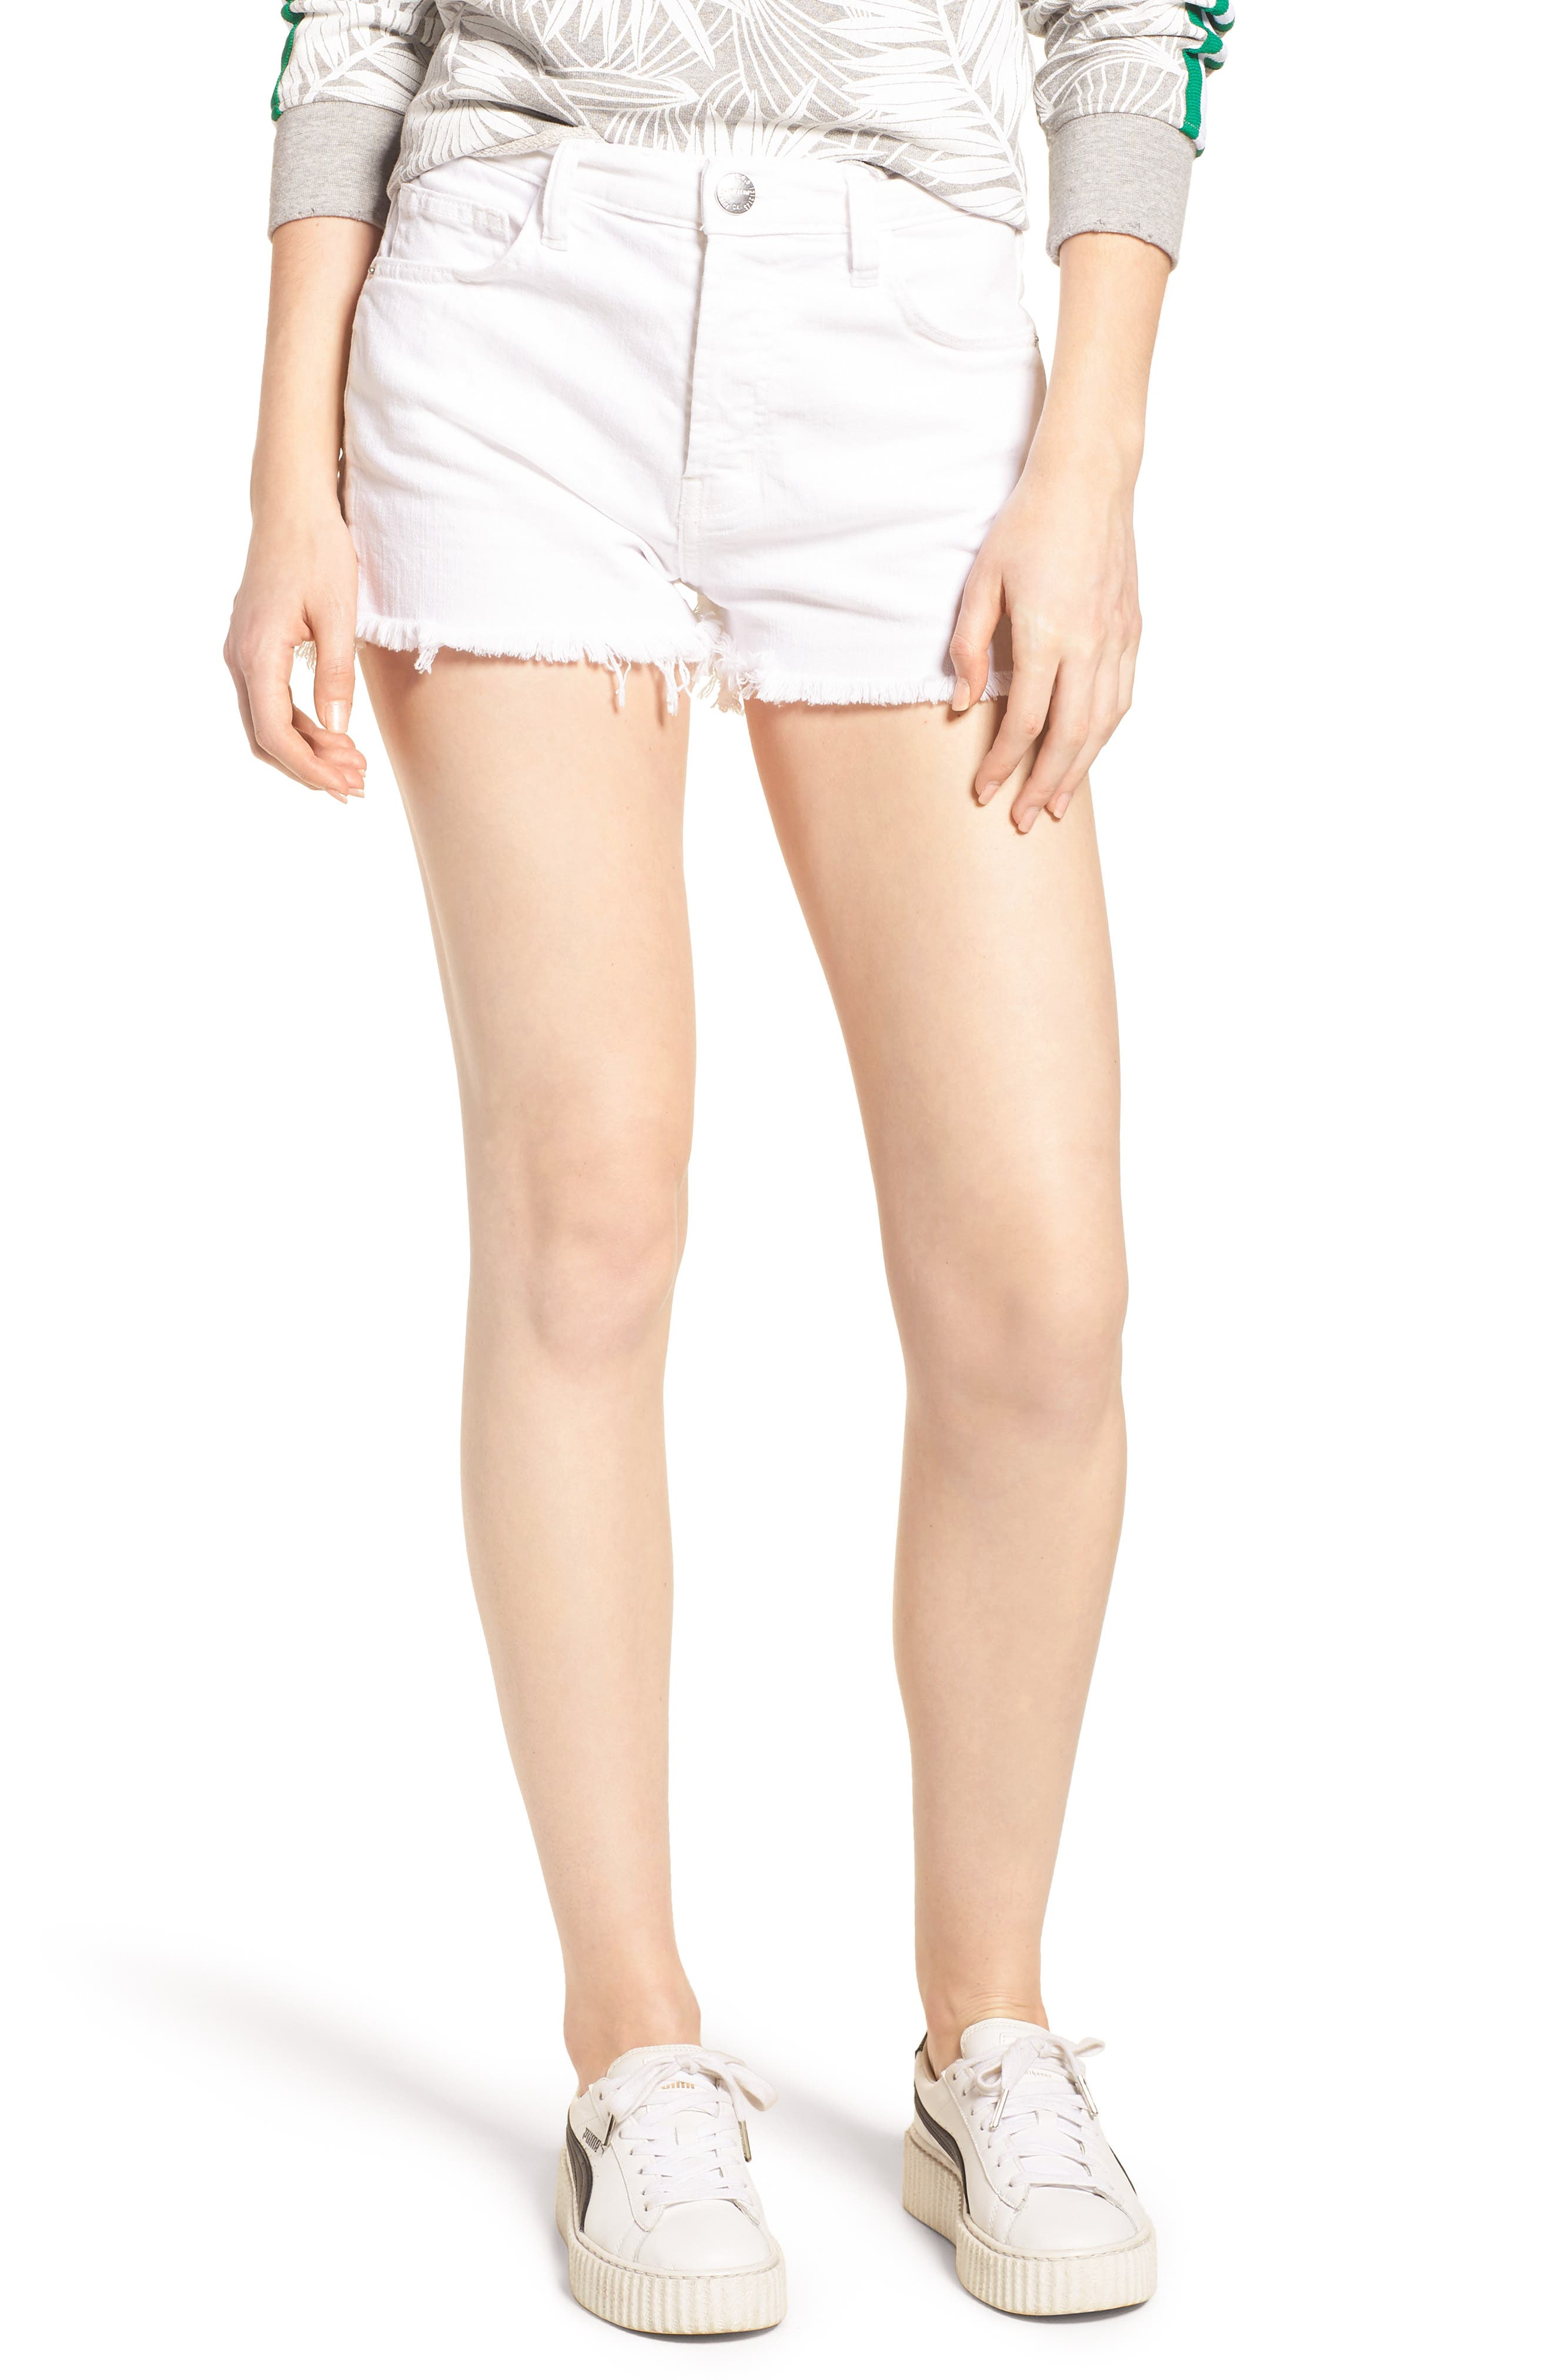 The Ultra High Waist Cutoff Denim Shorts,                             Main thumbnail 1, color,                             Sugar W/ Mishap Hem